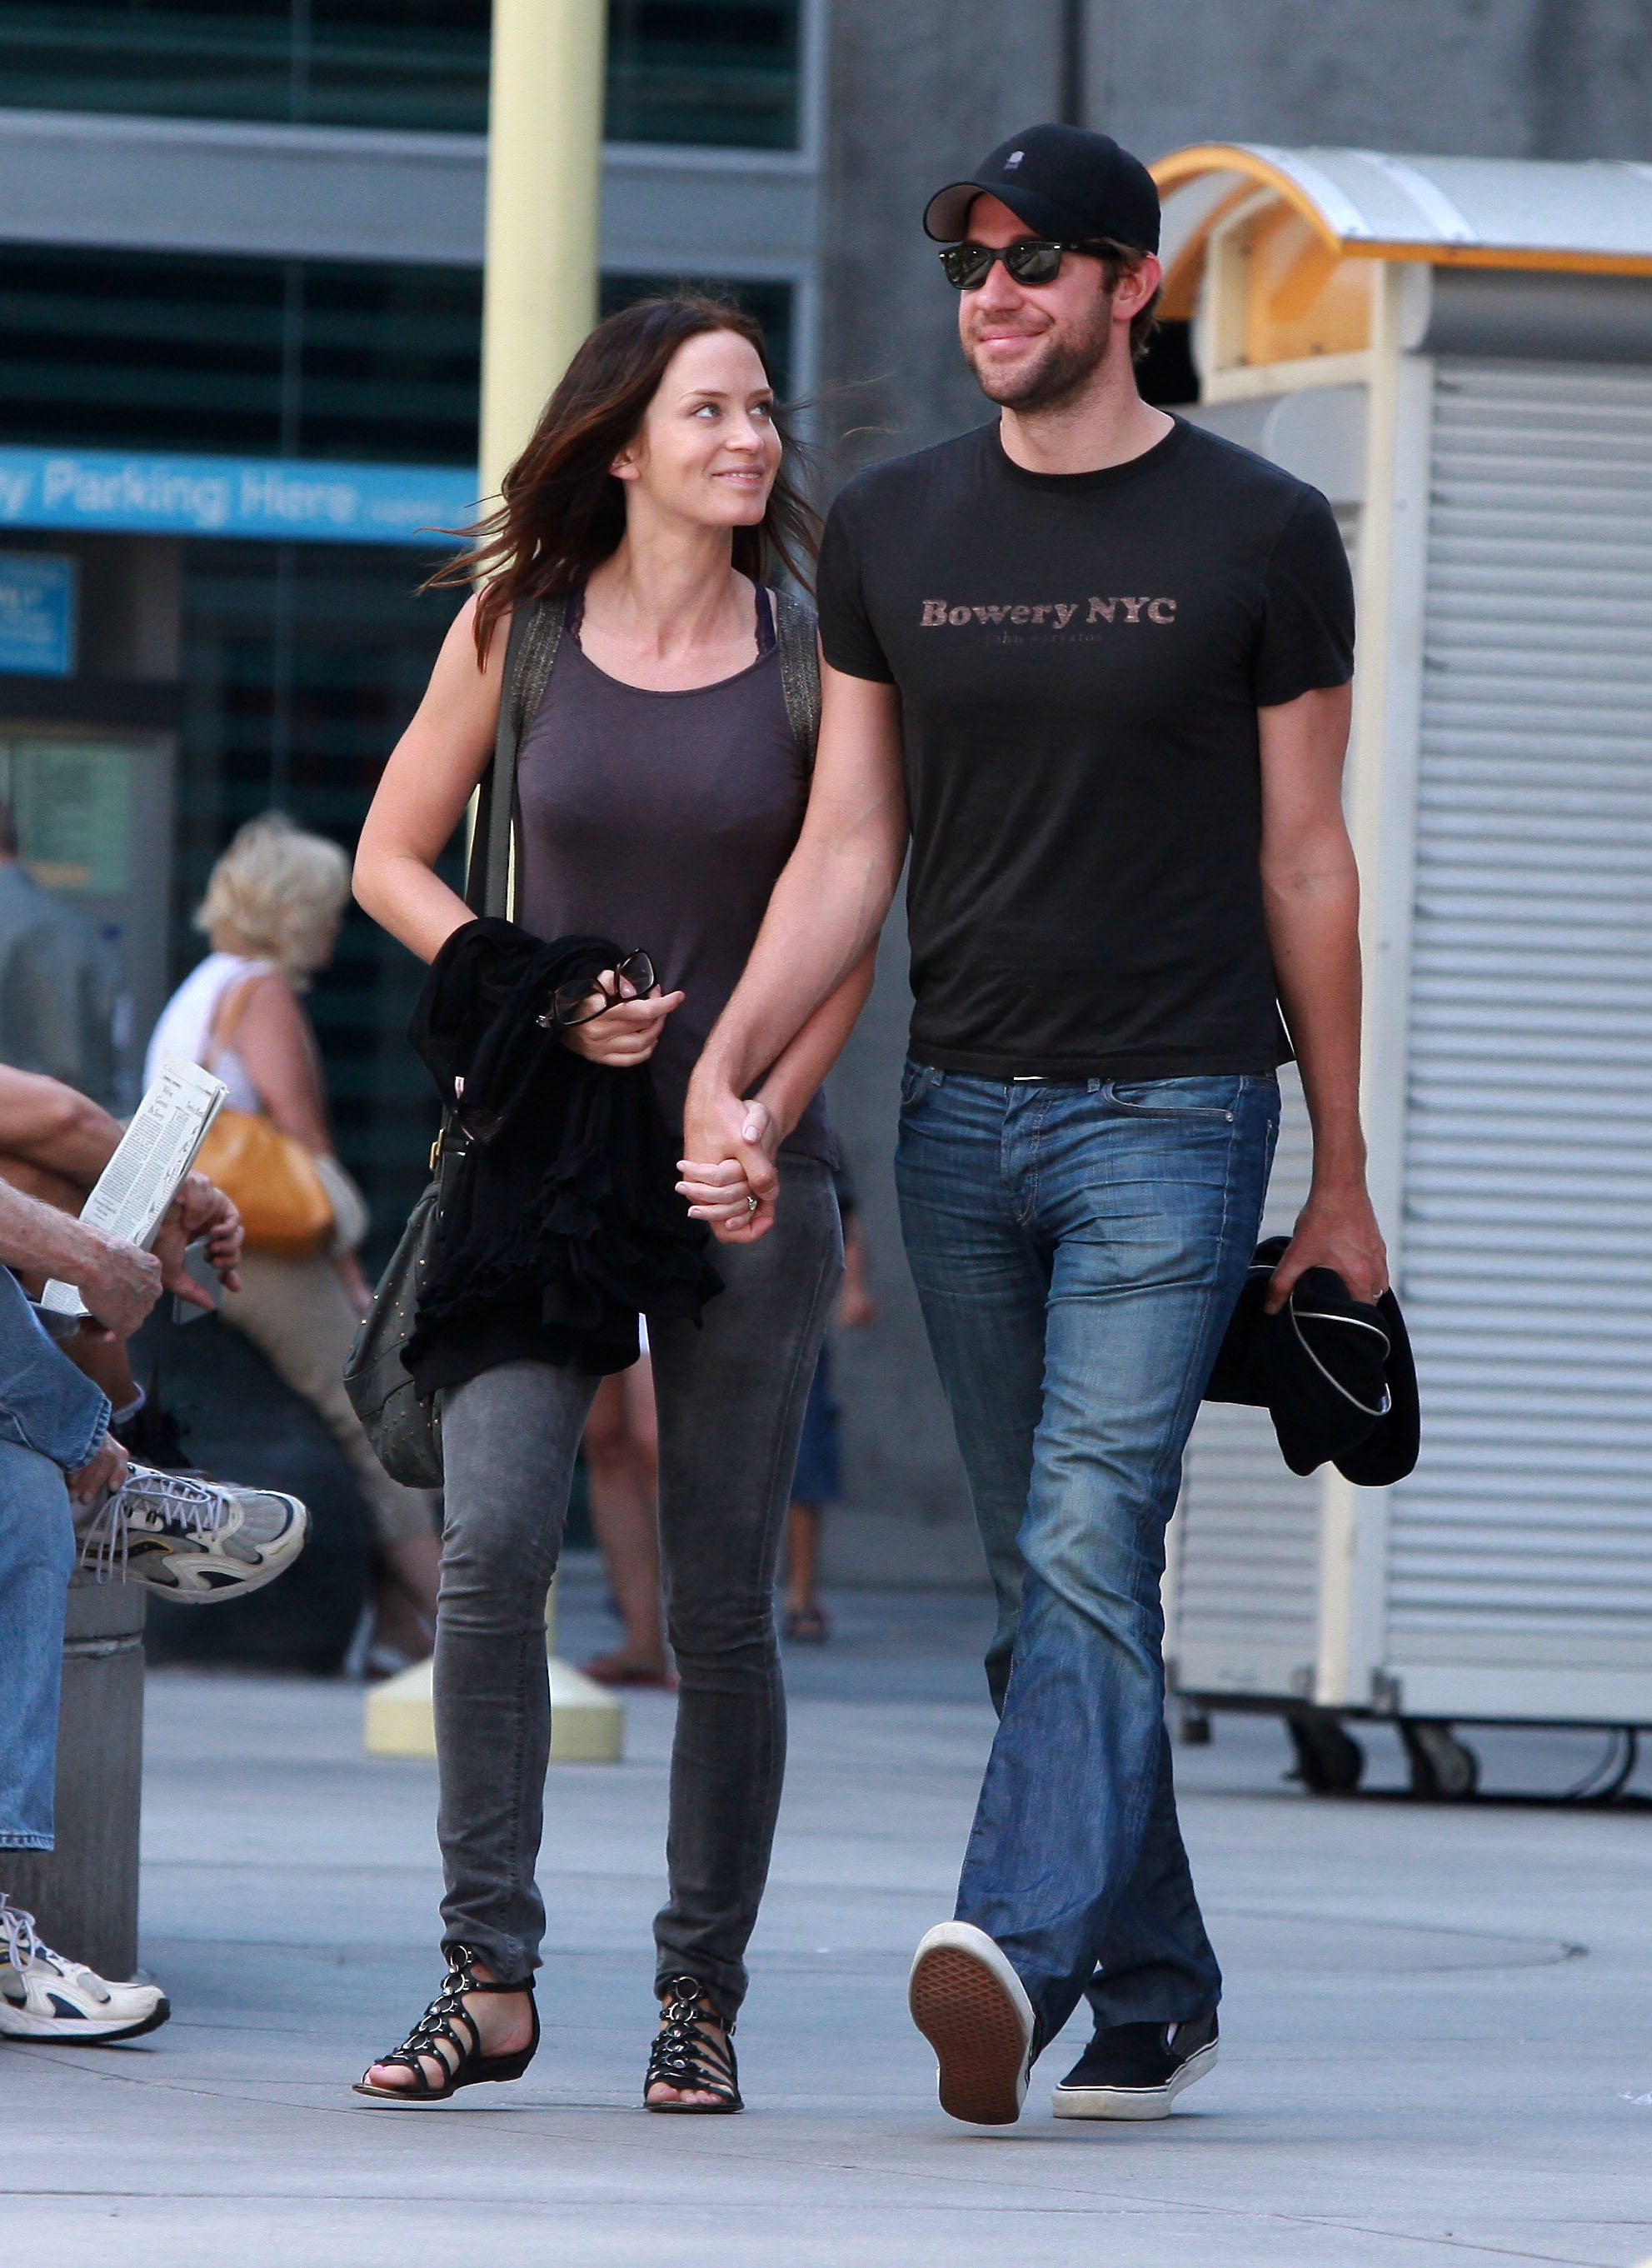 pictures of john krasinski and emily blunt going to a